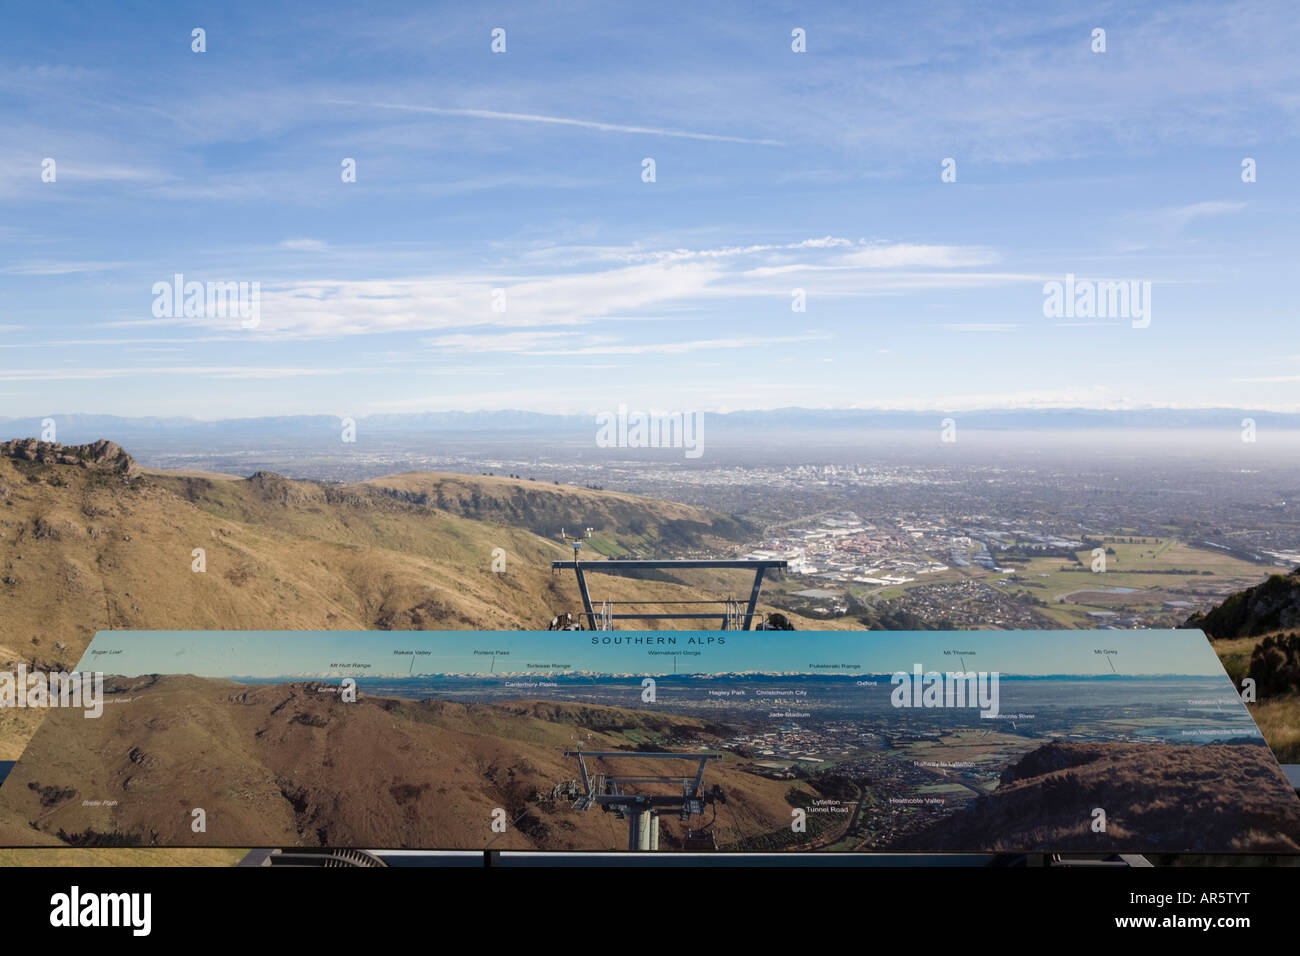 View from Mount Cavendish Gondola viewing deck in 'Port Hills' with pictorial sign Christchurch South Island - Stock Image